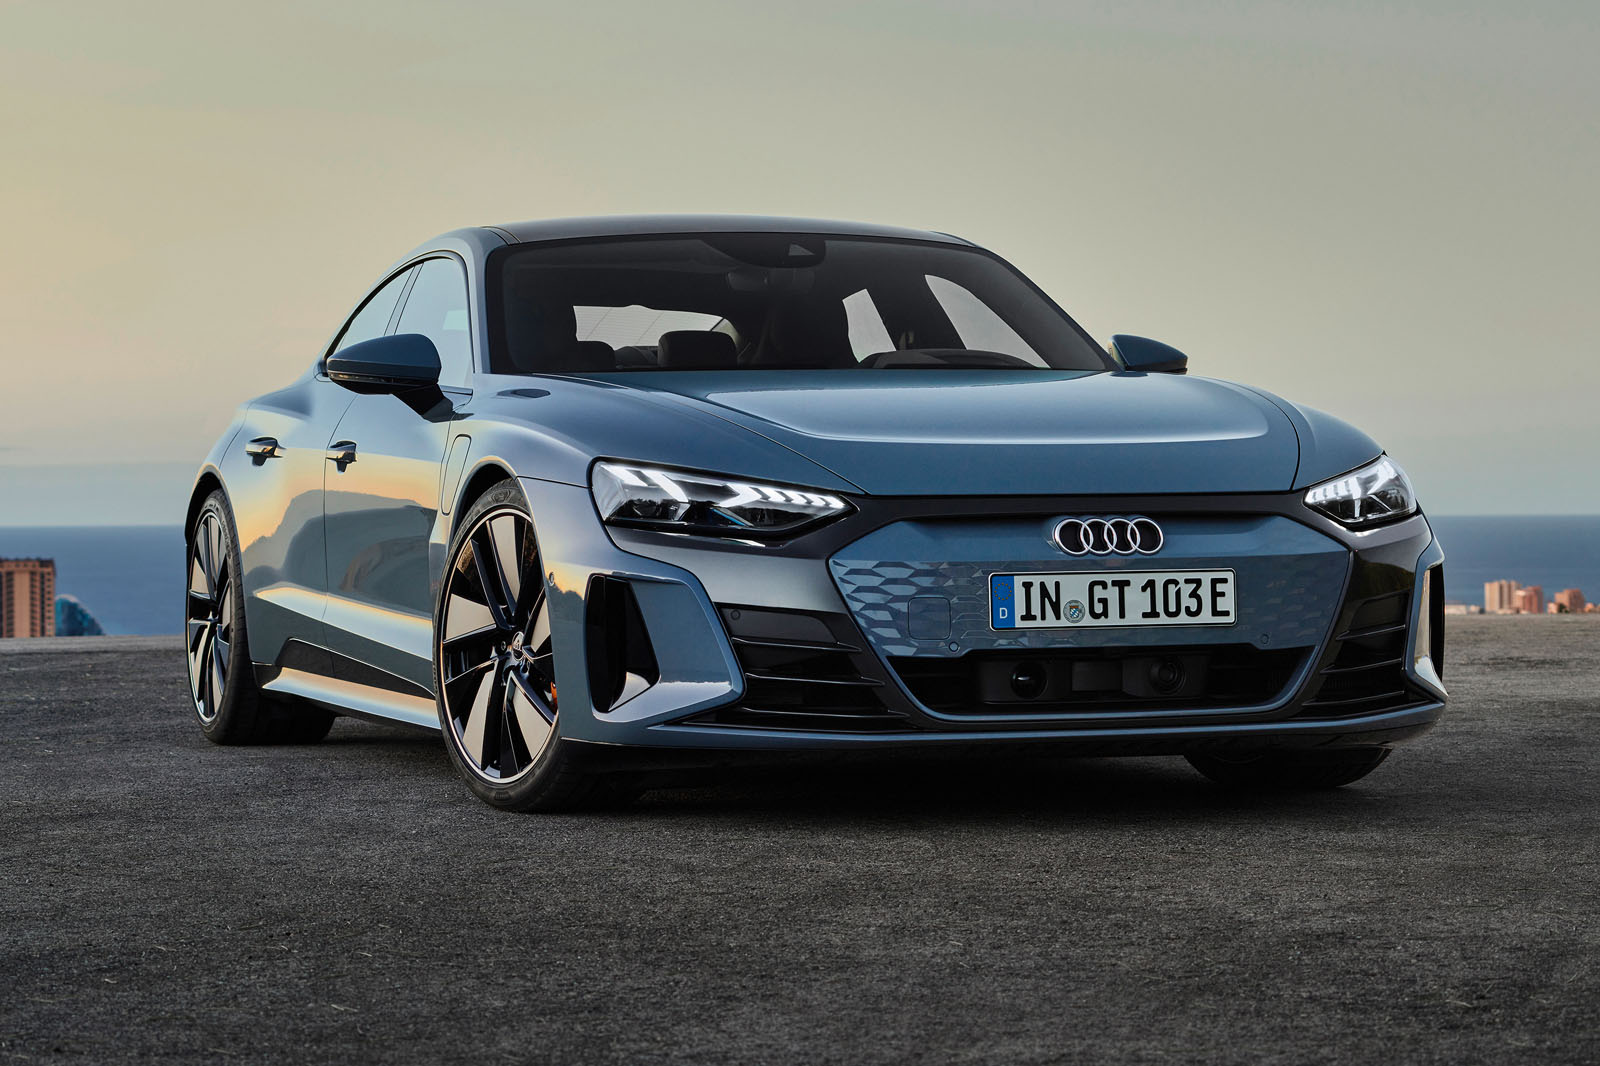 99-audi-e-tron-gt-2021-official-reveal-static-front.jpg